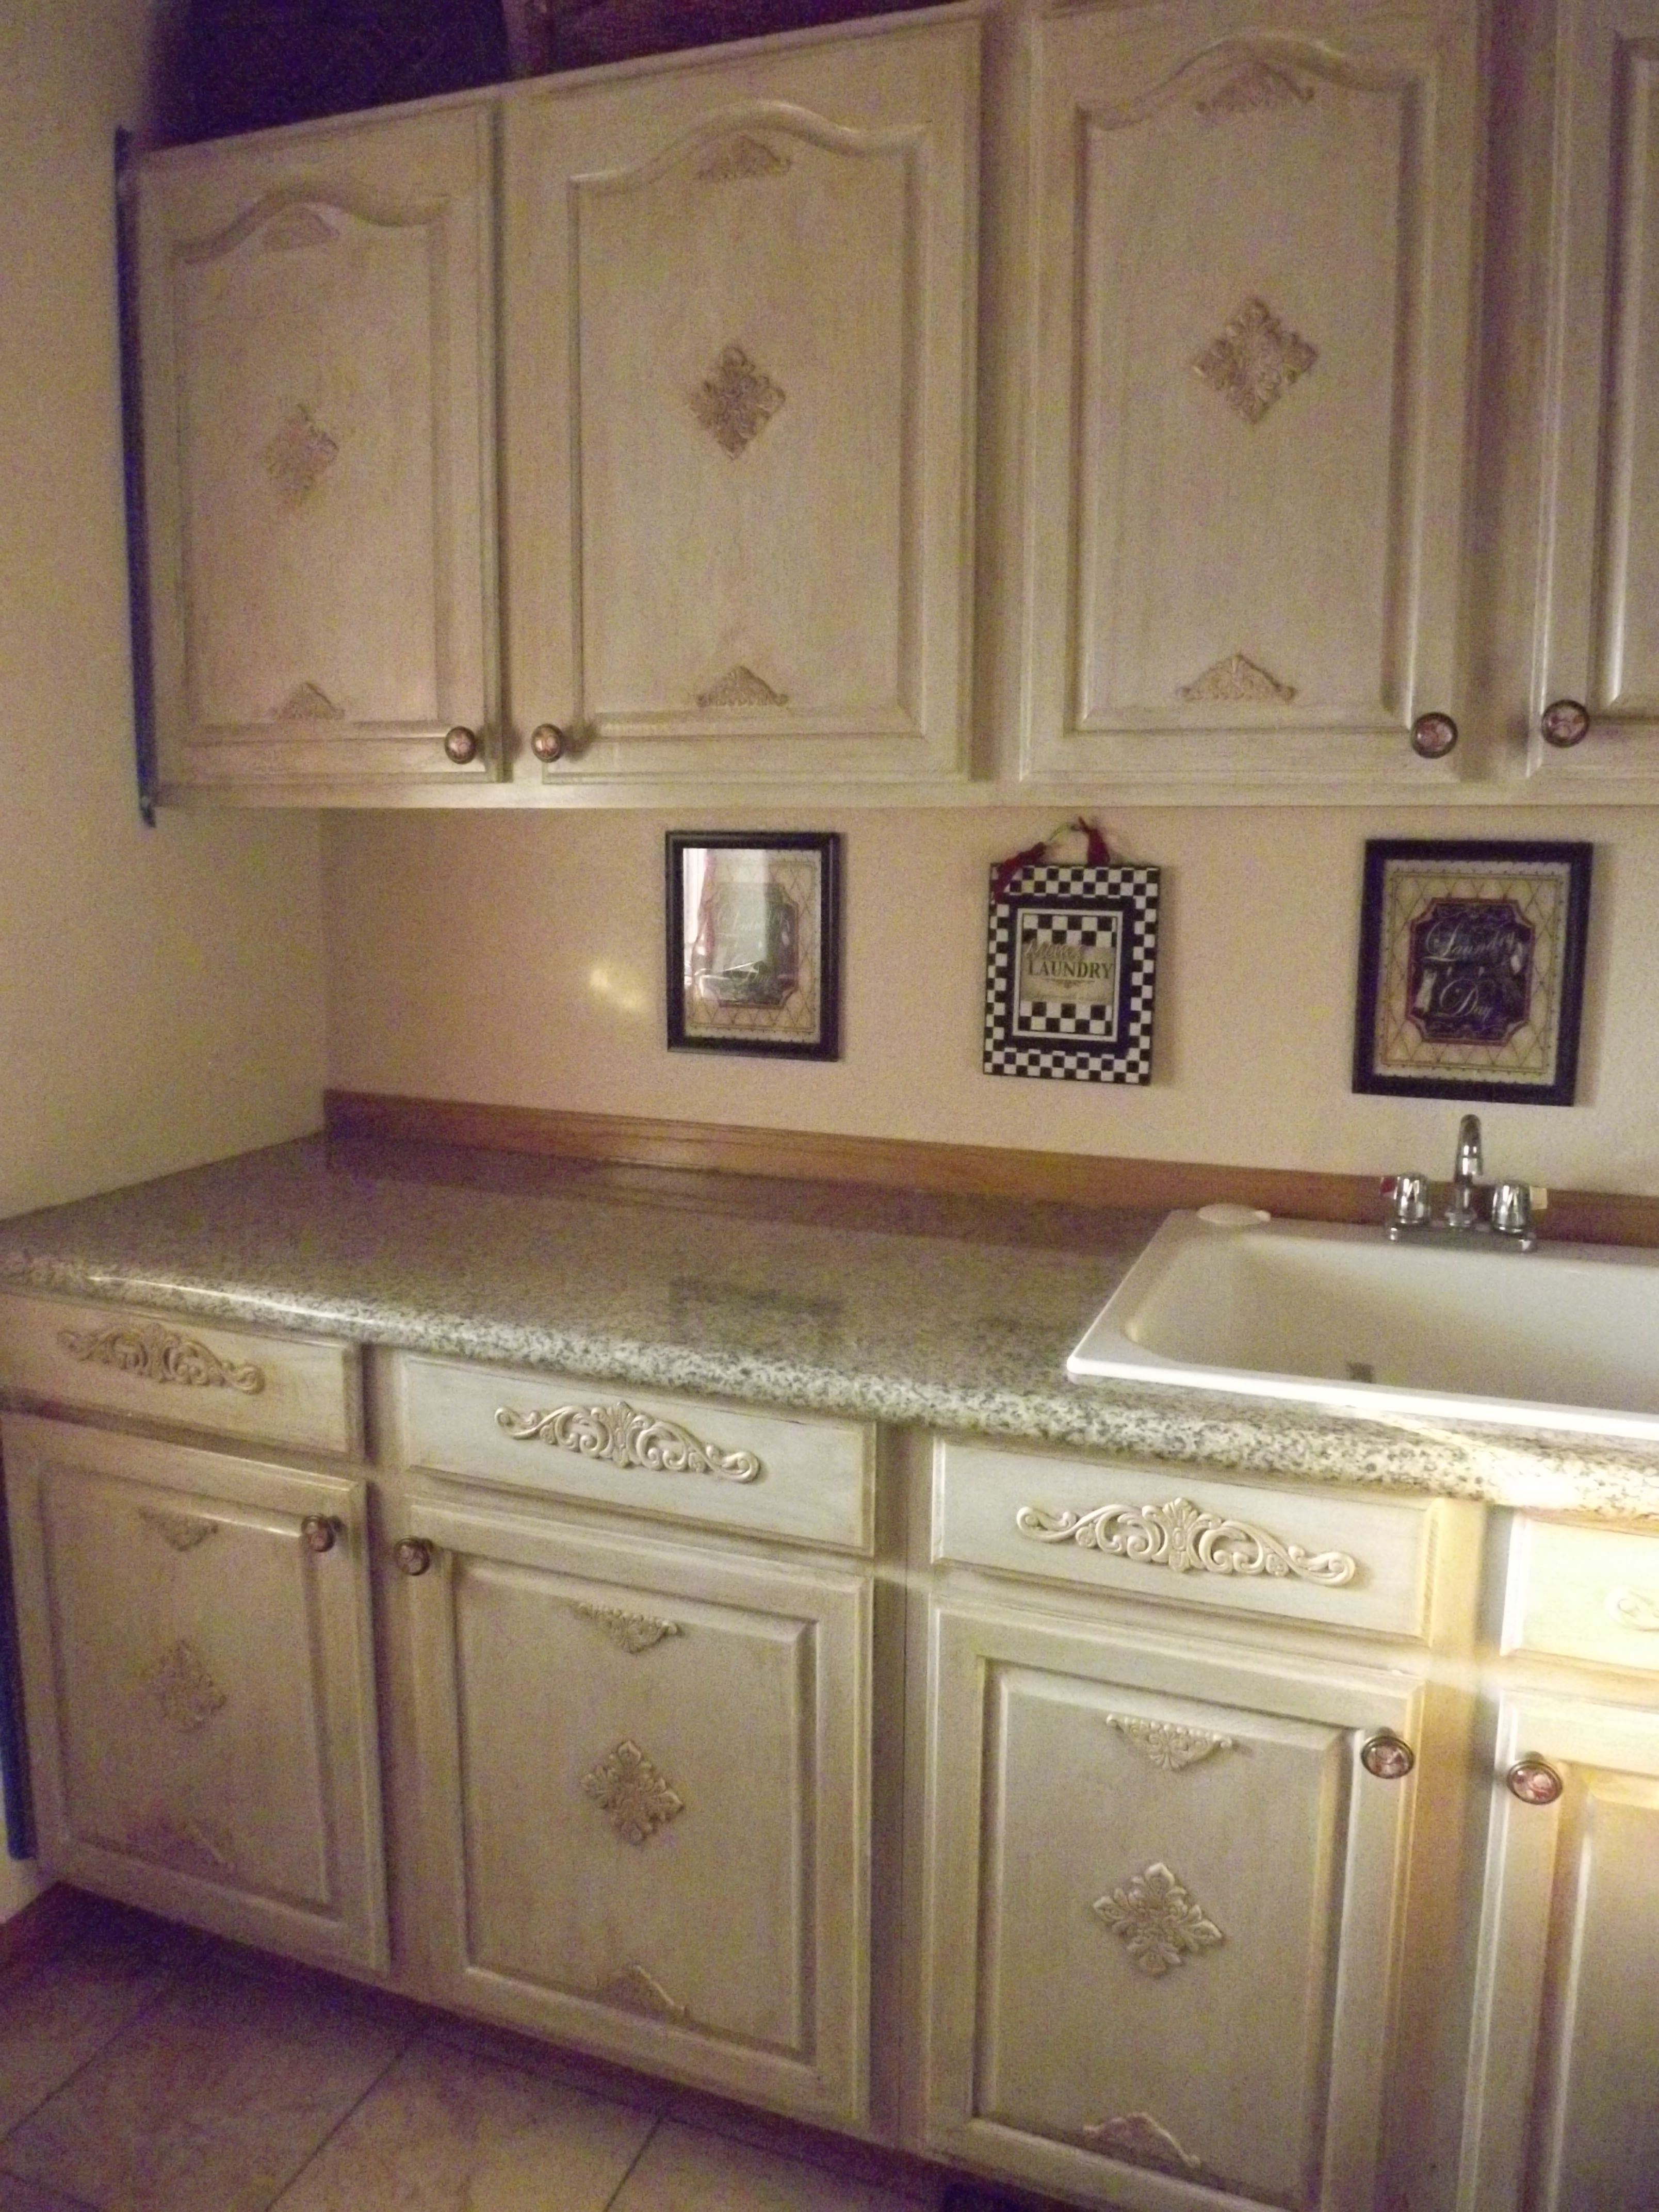 Laundry makeover | Decor & DIY projects | cabinets | Pinterest